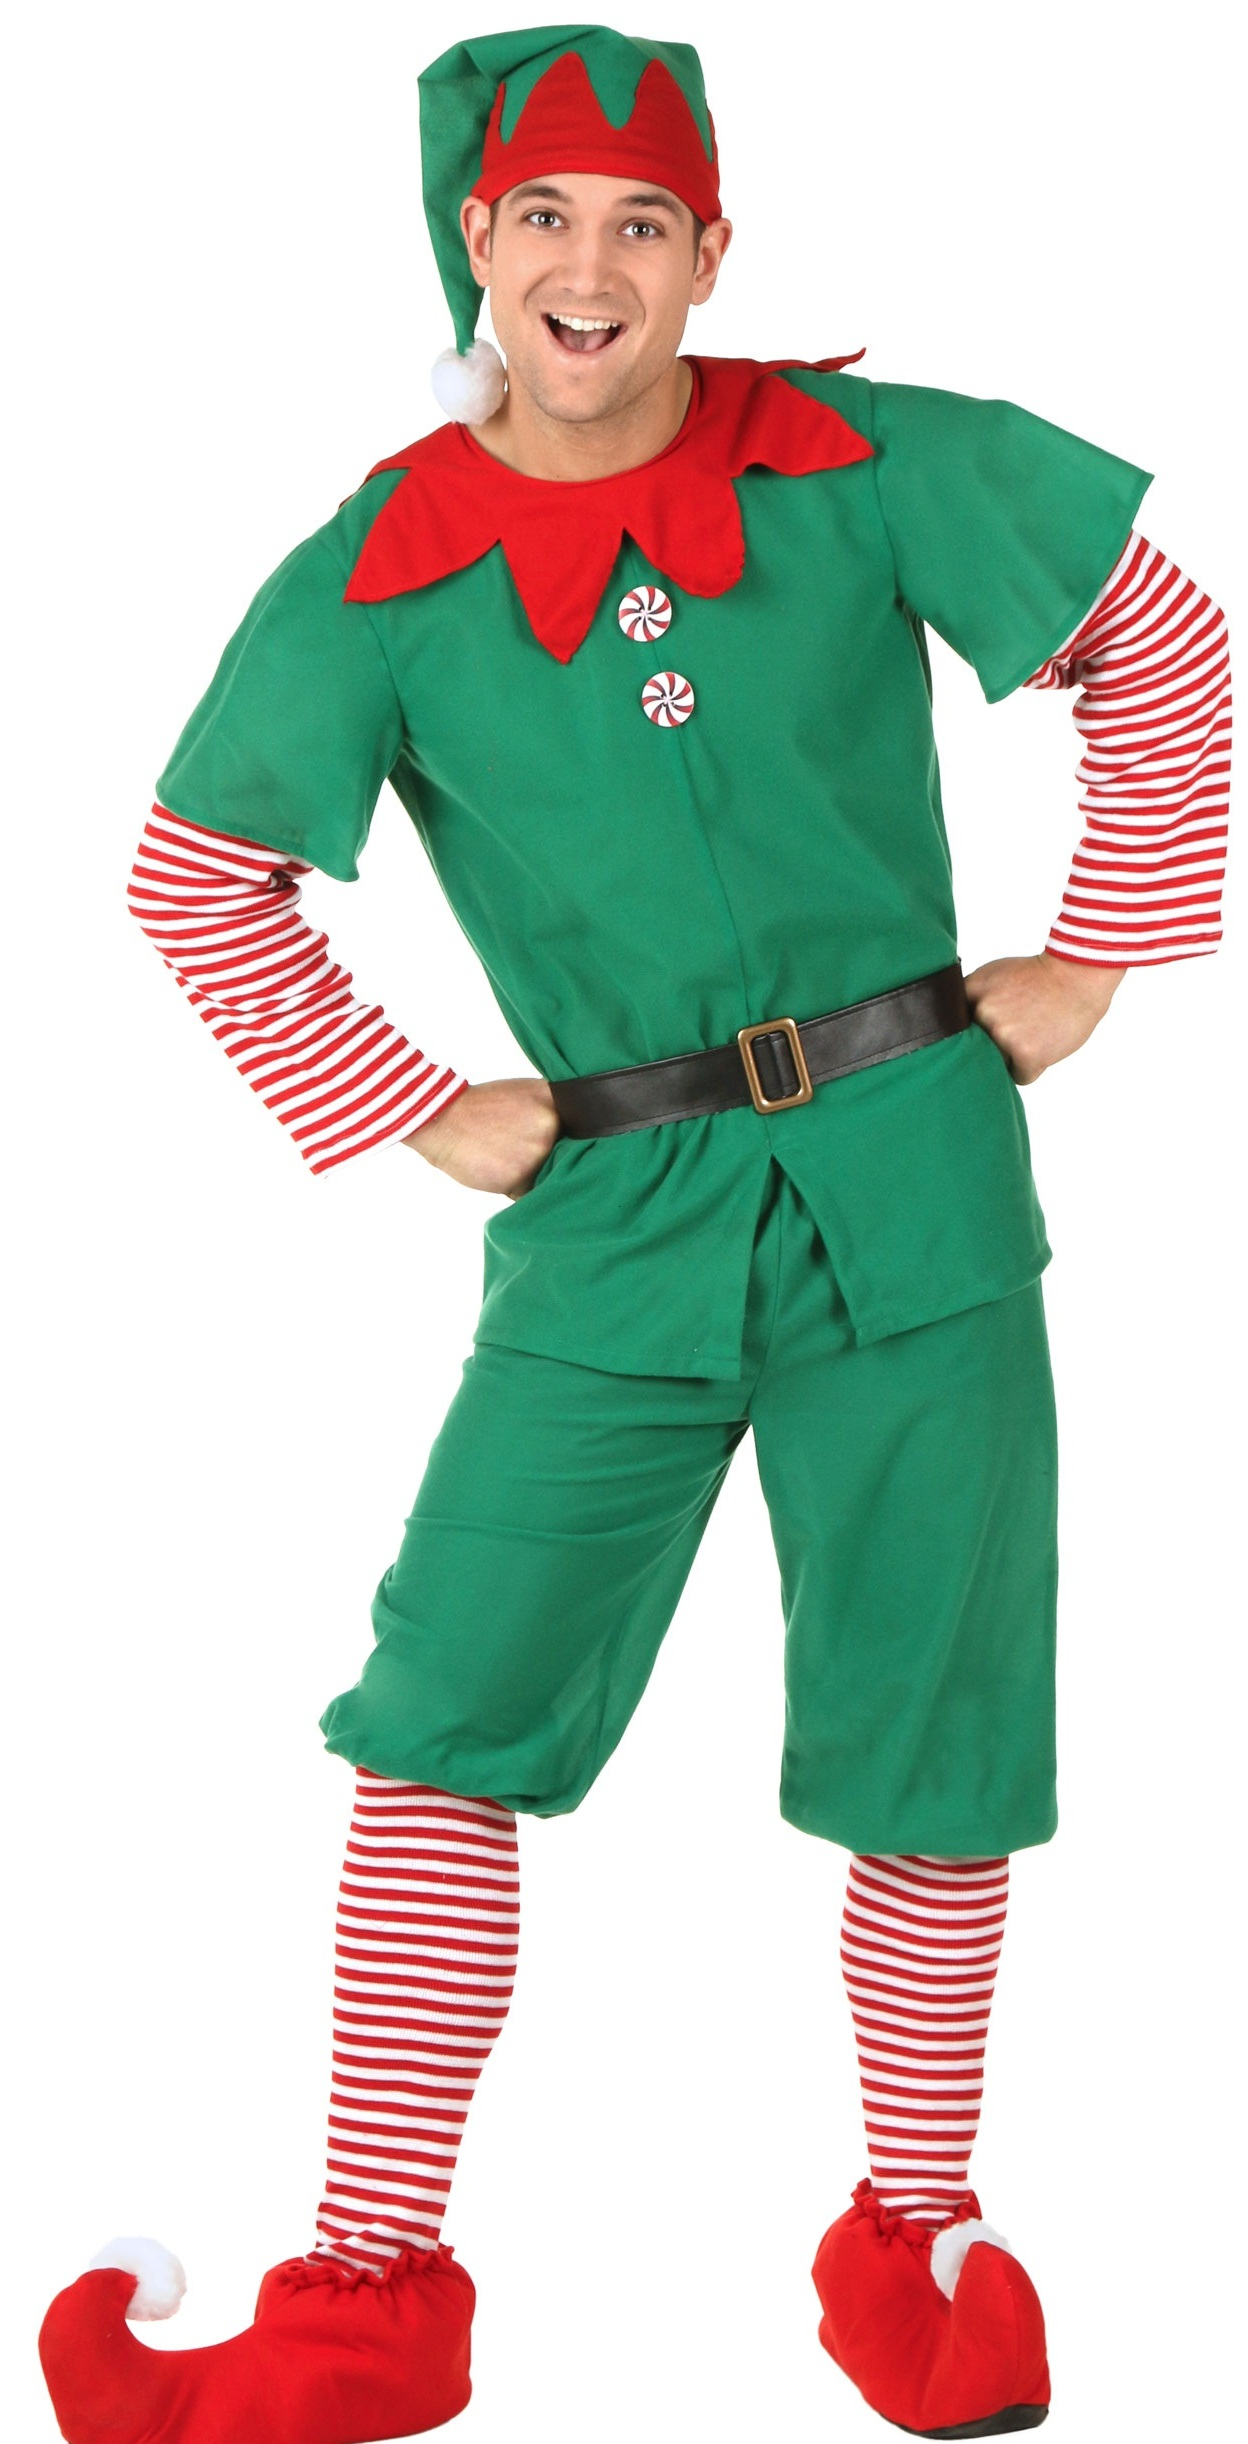 Buddy the elf… - What's your favorite color?